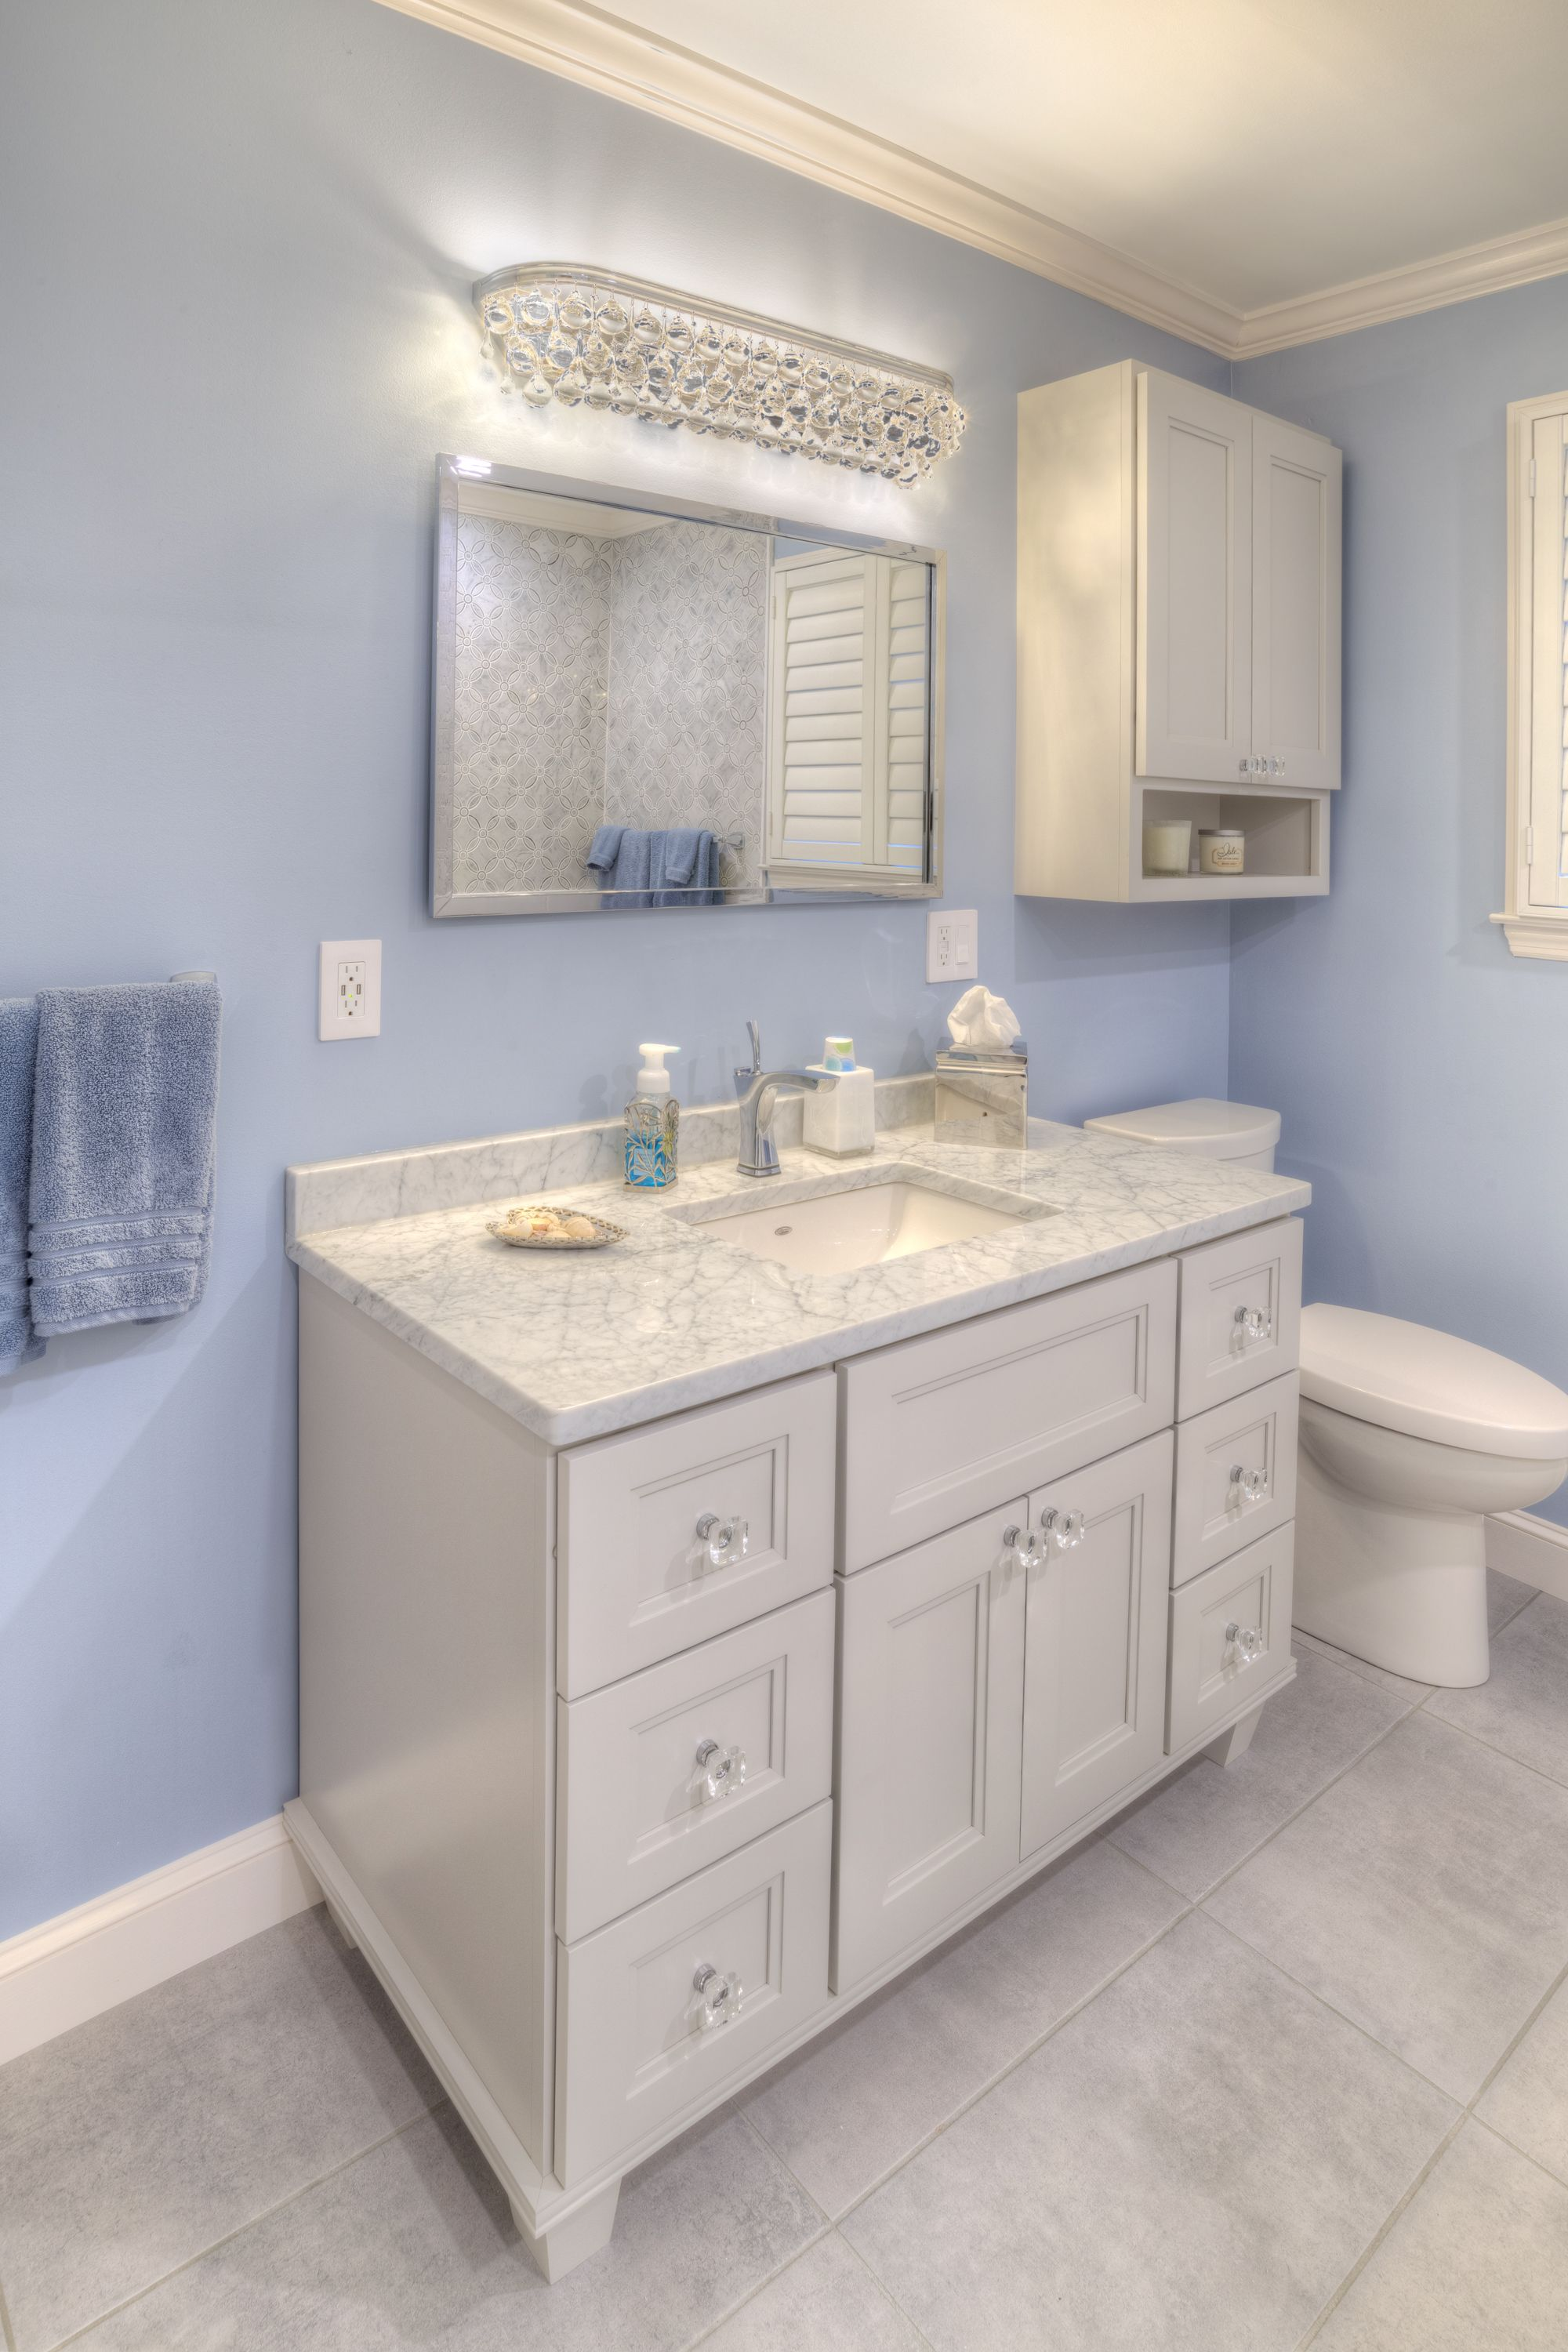 Beautiful area created in this bathroom renovation by ... on Disabatino Outdoor Living id=35709